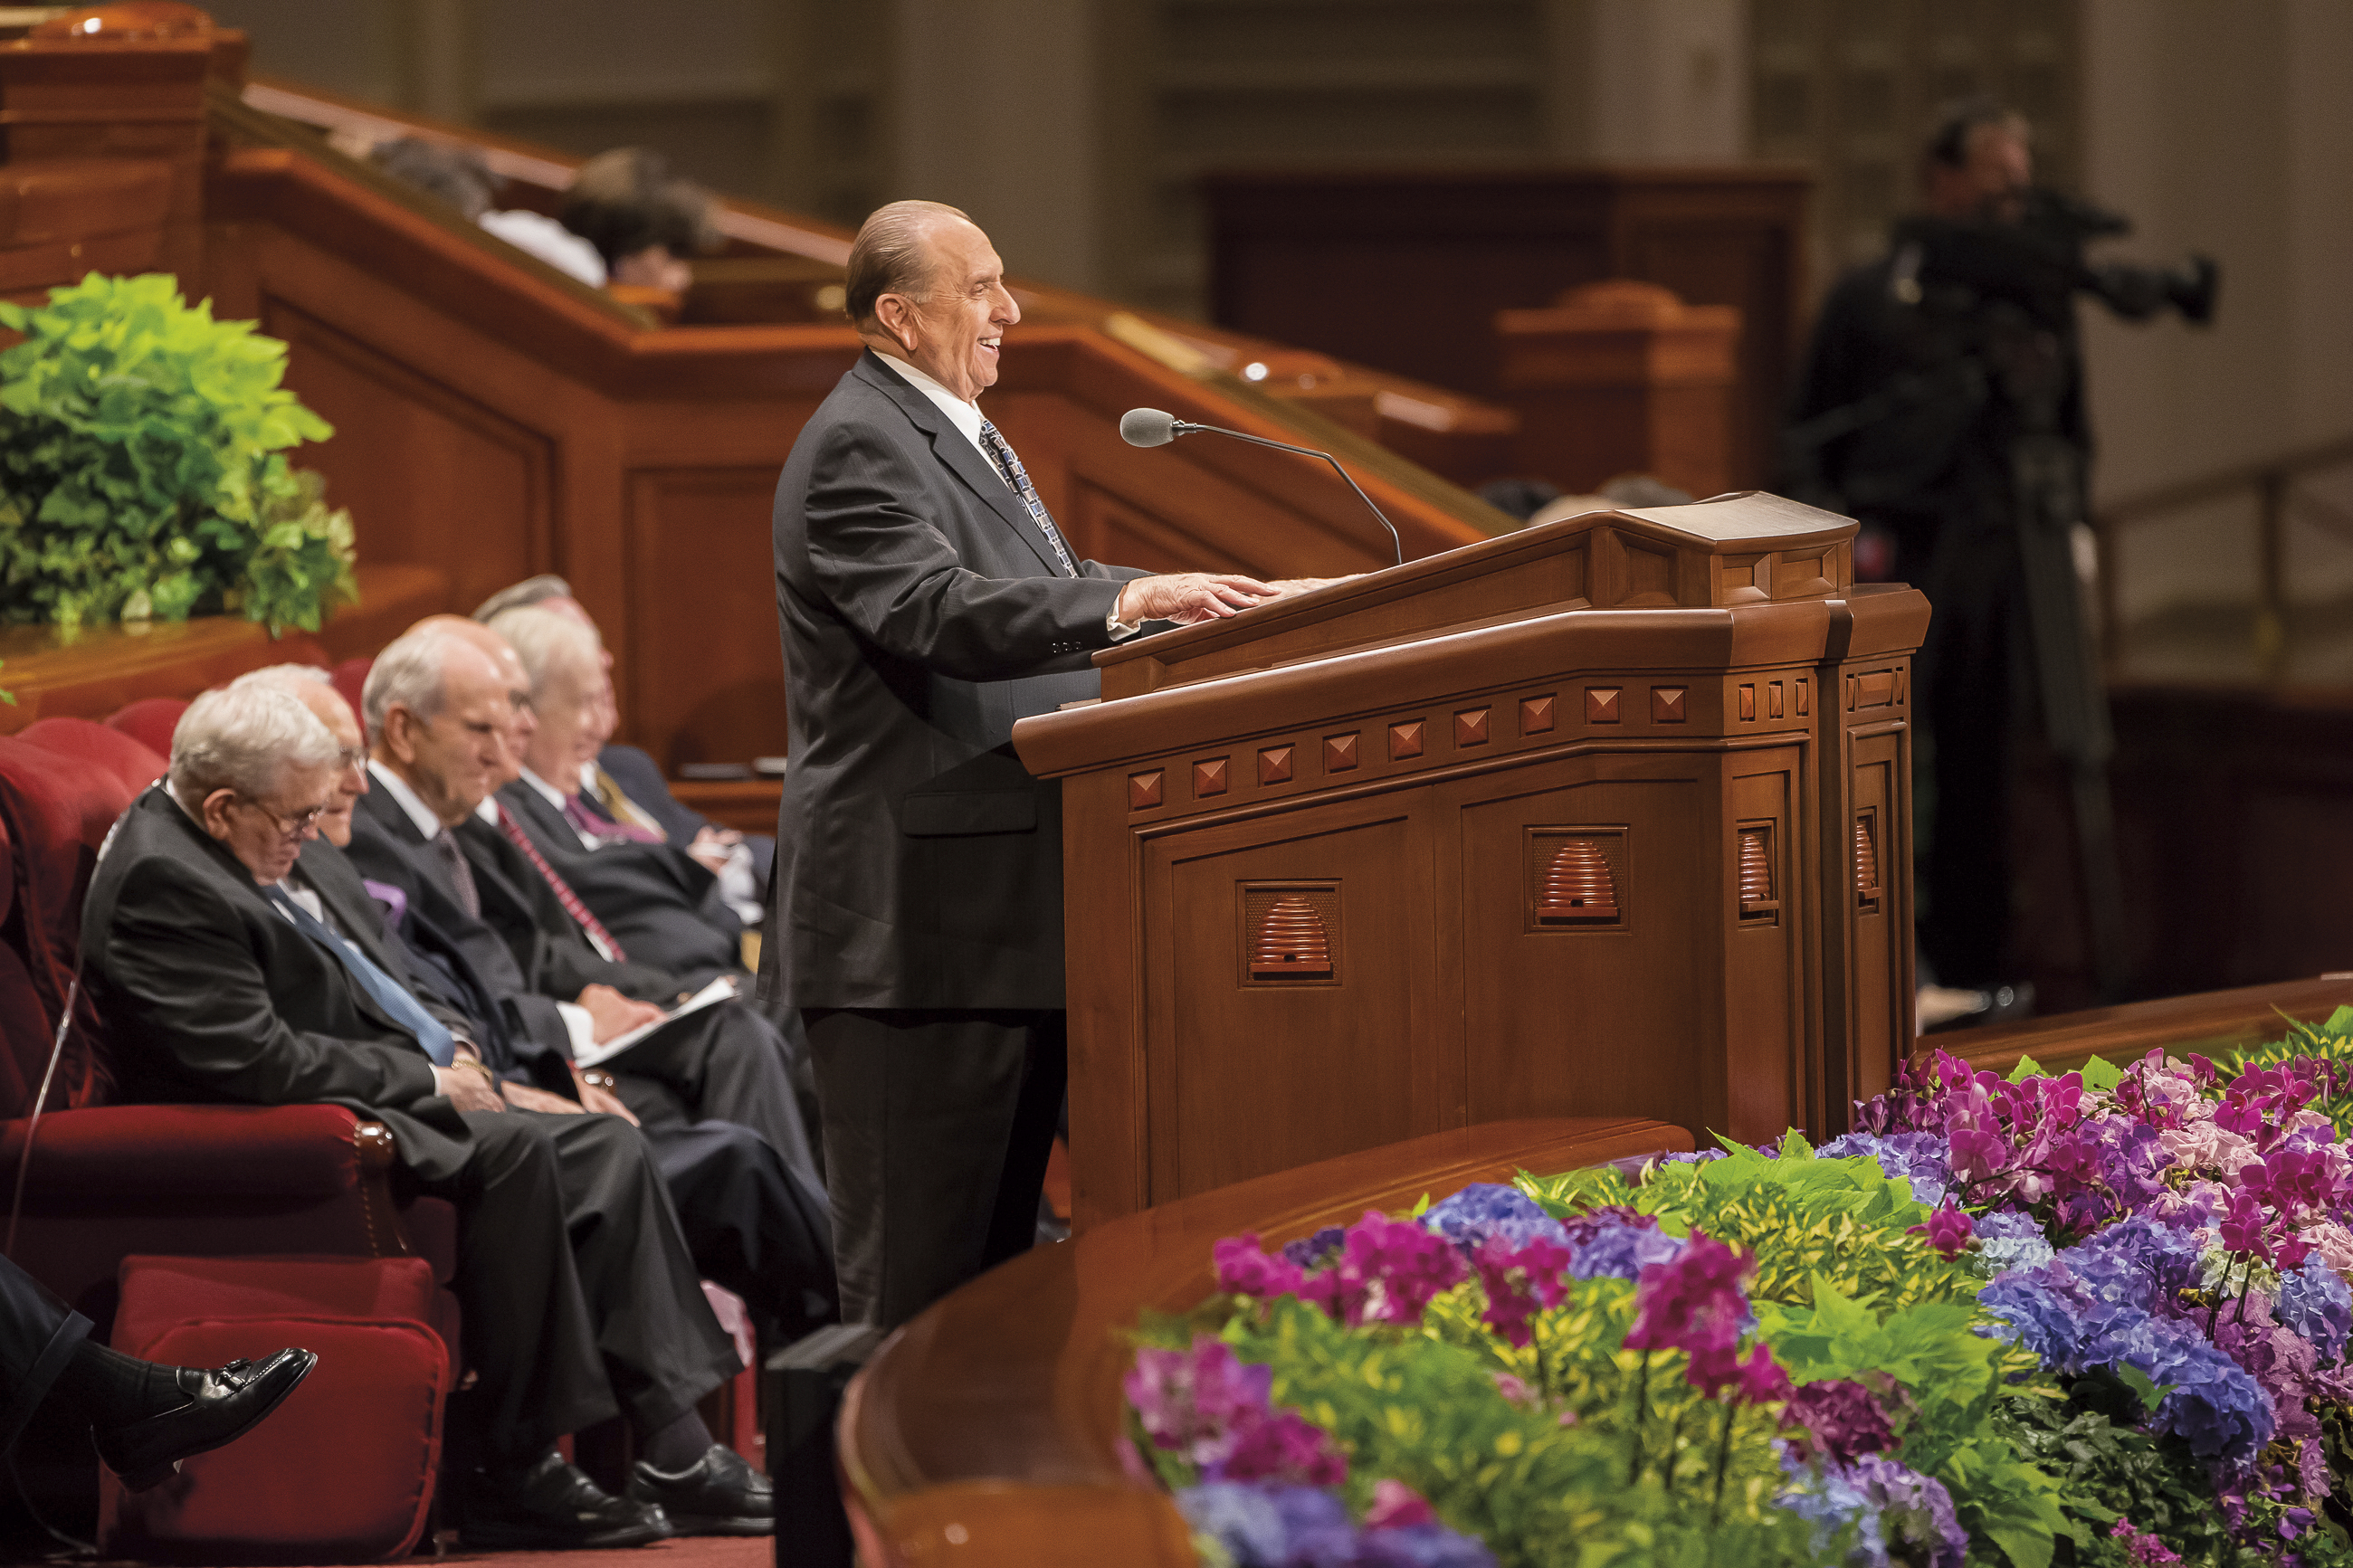 Thomas S. Monson standing at the pulpit at general conference, with several Apostles sitting behind him.